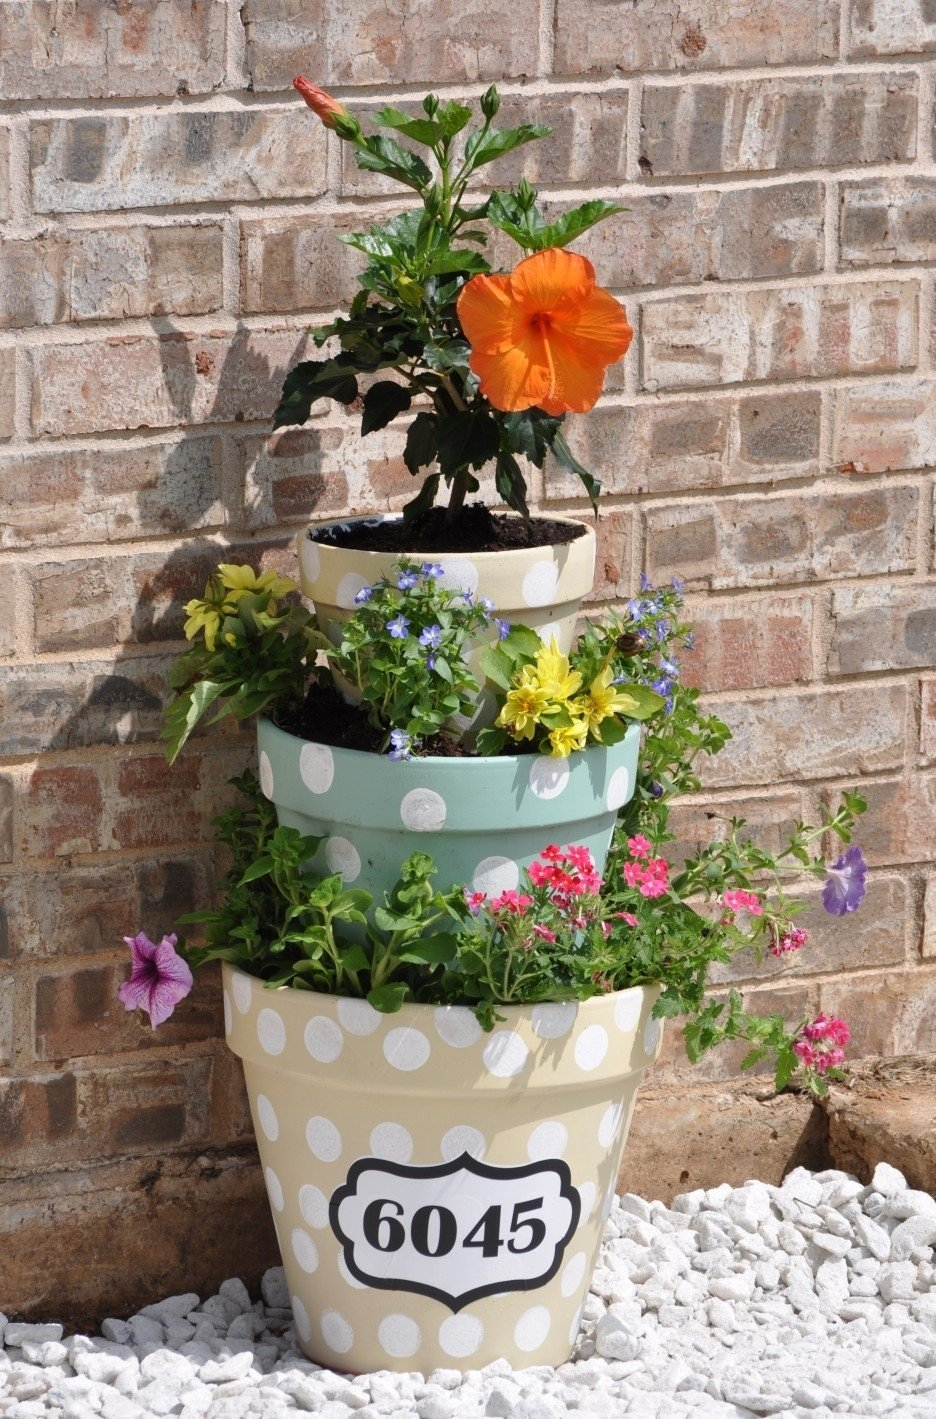 10 Awesome Planter Ideas For Front Porch front porch chic flowers pot design with stacked pots and polka dot 2021